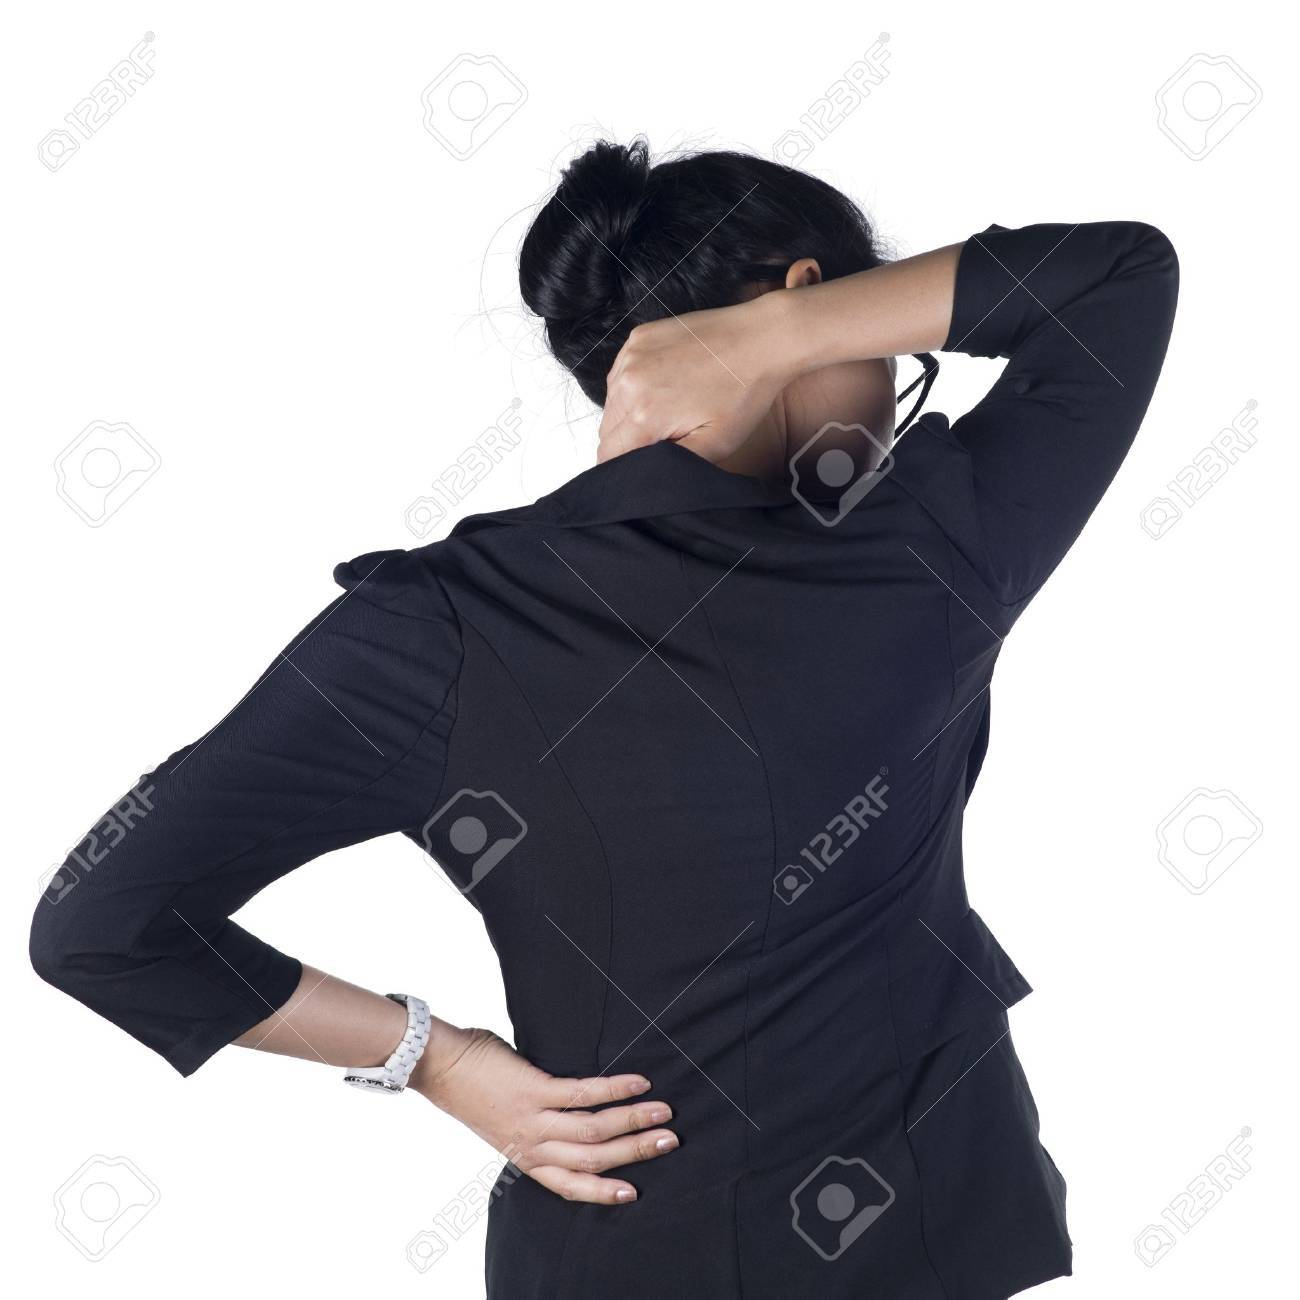 Business woman with back pain isolated white background, Model is Asian woman. Stock Photo - 17158093